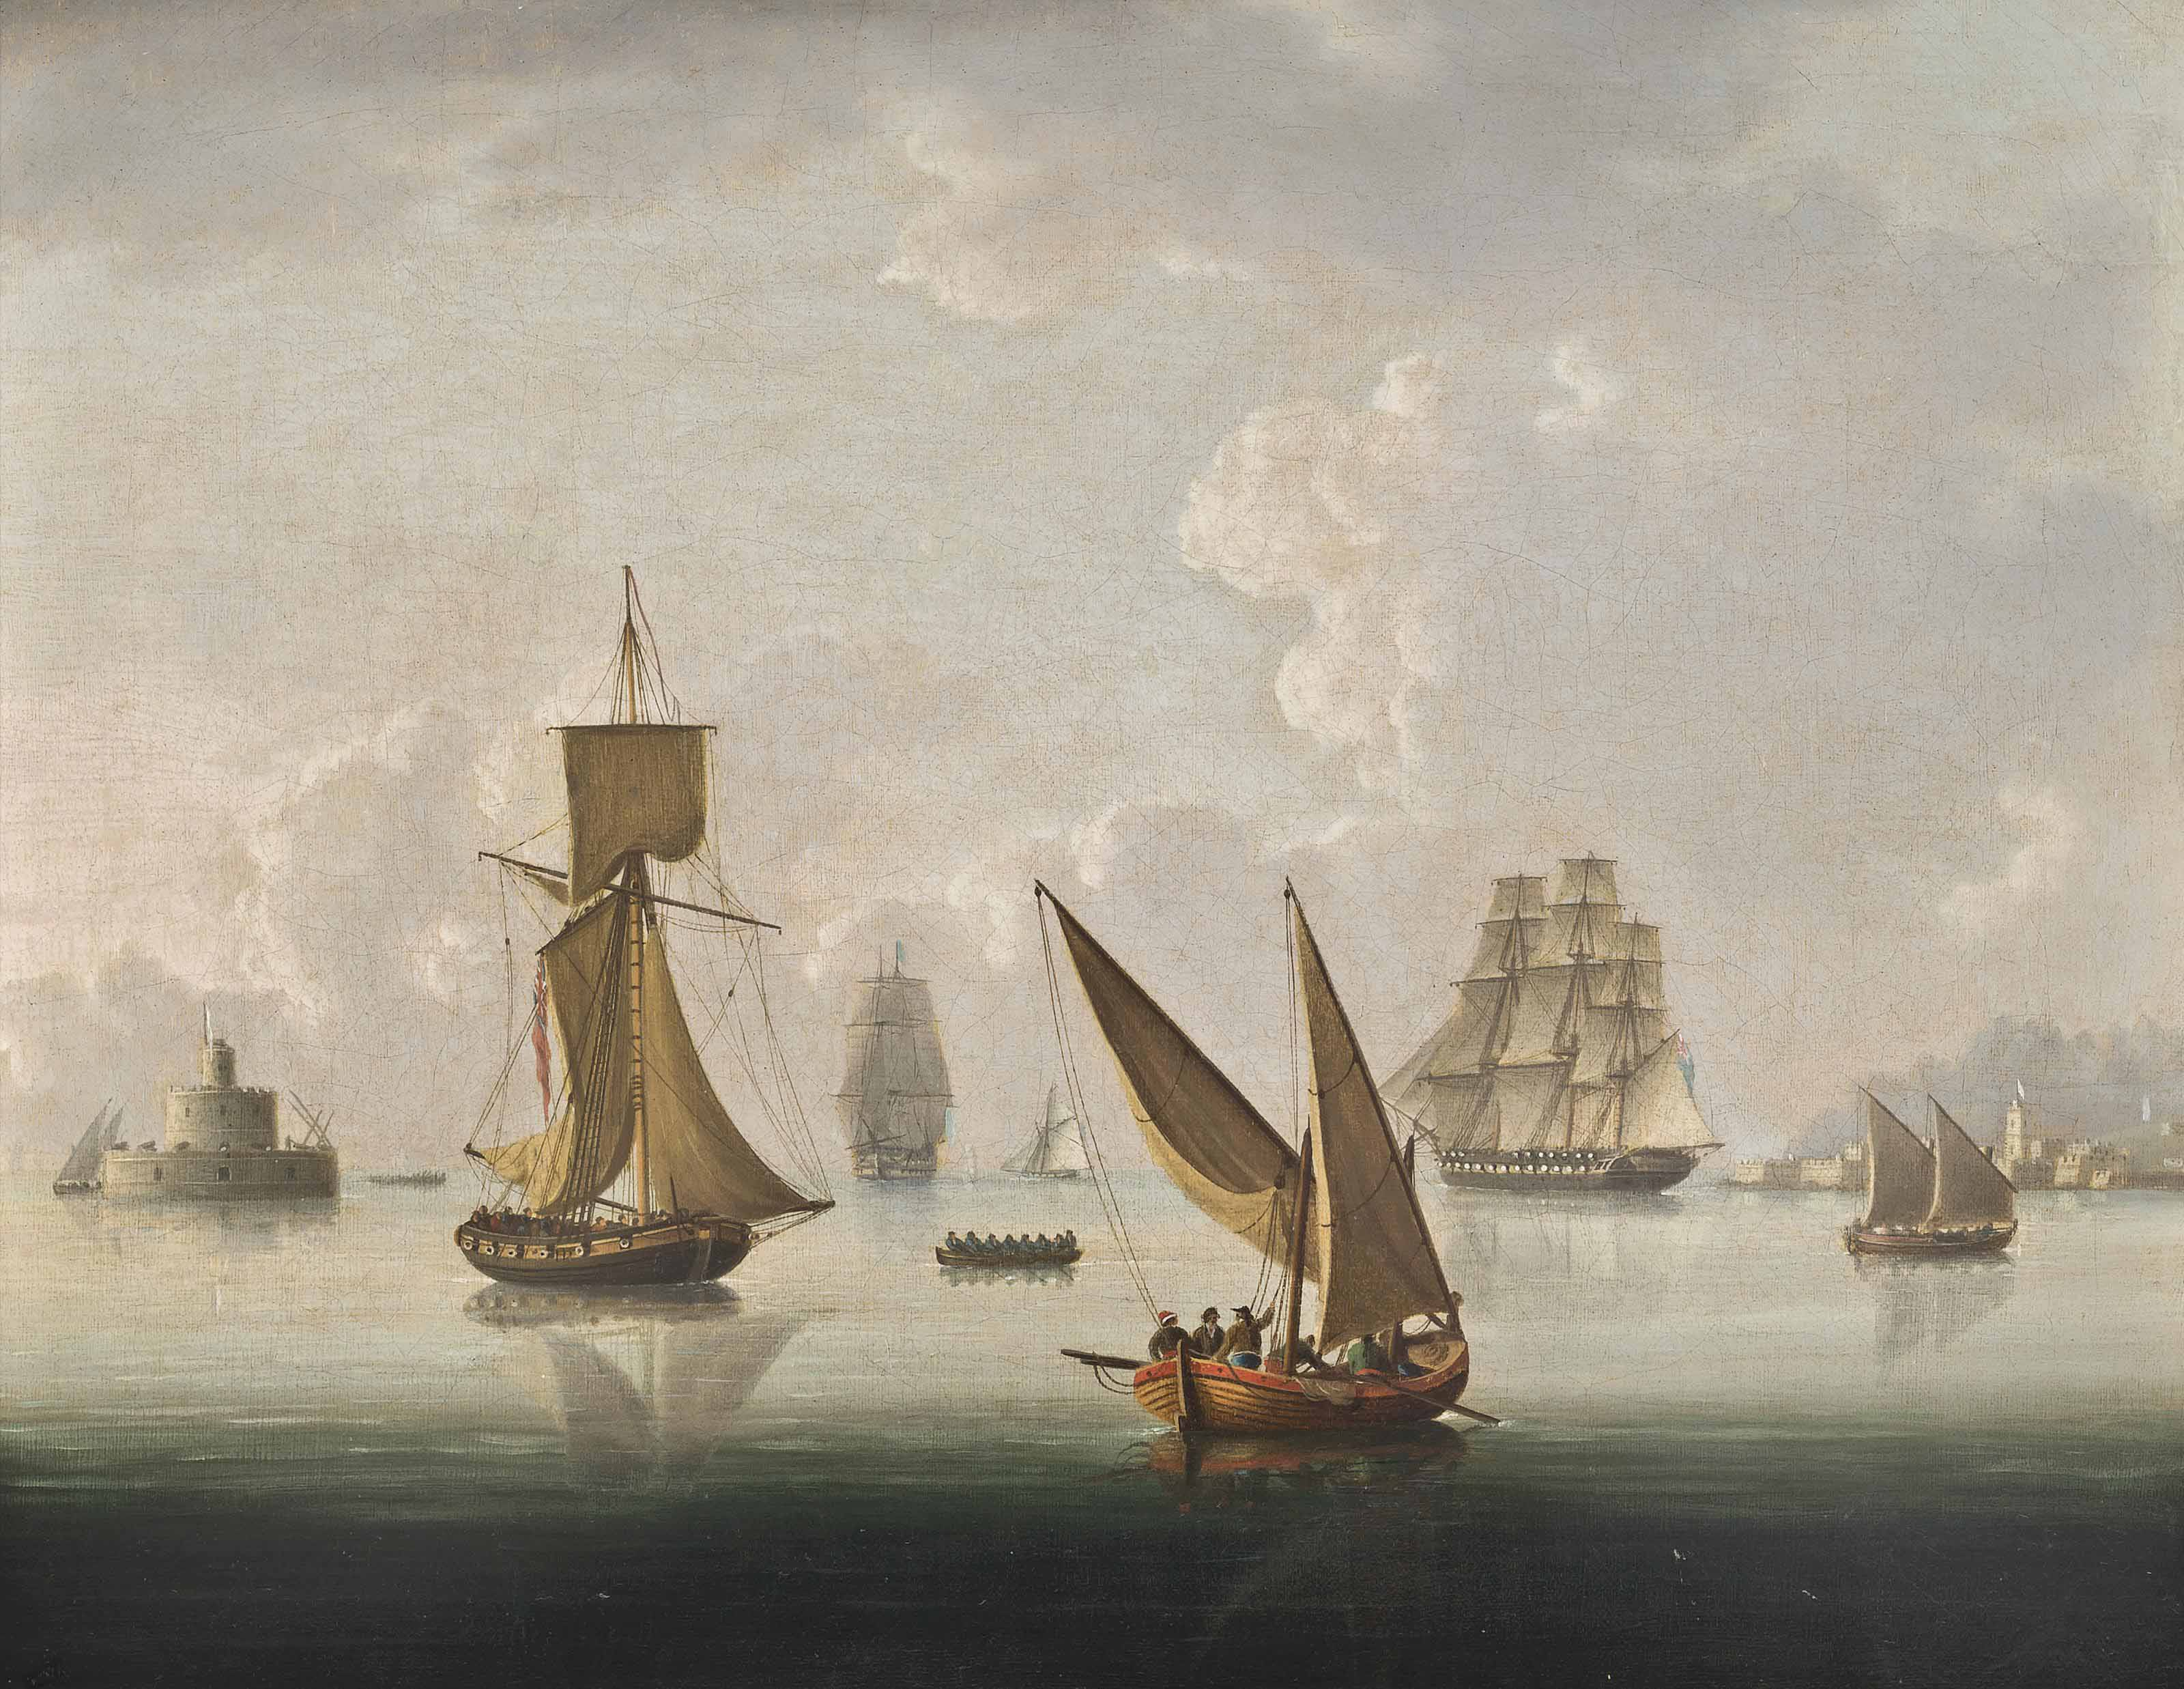 British warships, an armed cutter and xebecs becalmed on the Tagus, Lisbon